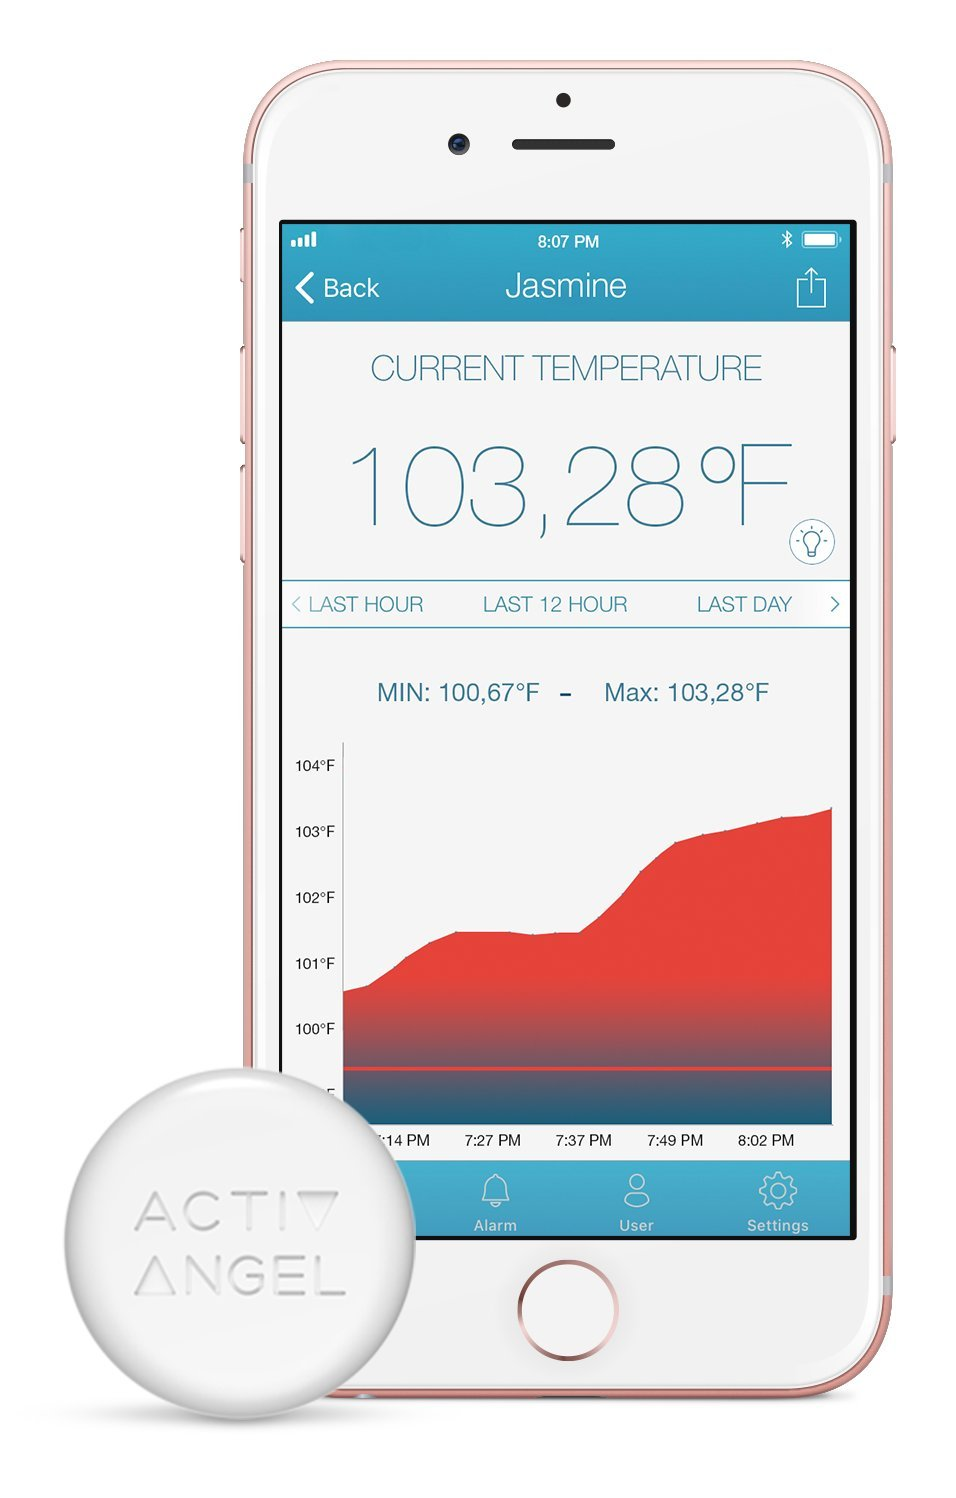 ActivAngel Smart Thermometer - The fast, non-intrusive way to take and monitor temperature. by ActivAngel